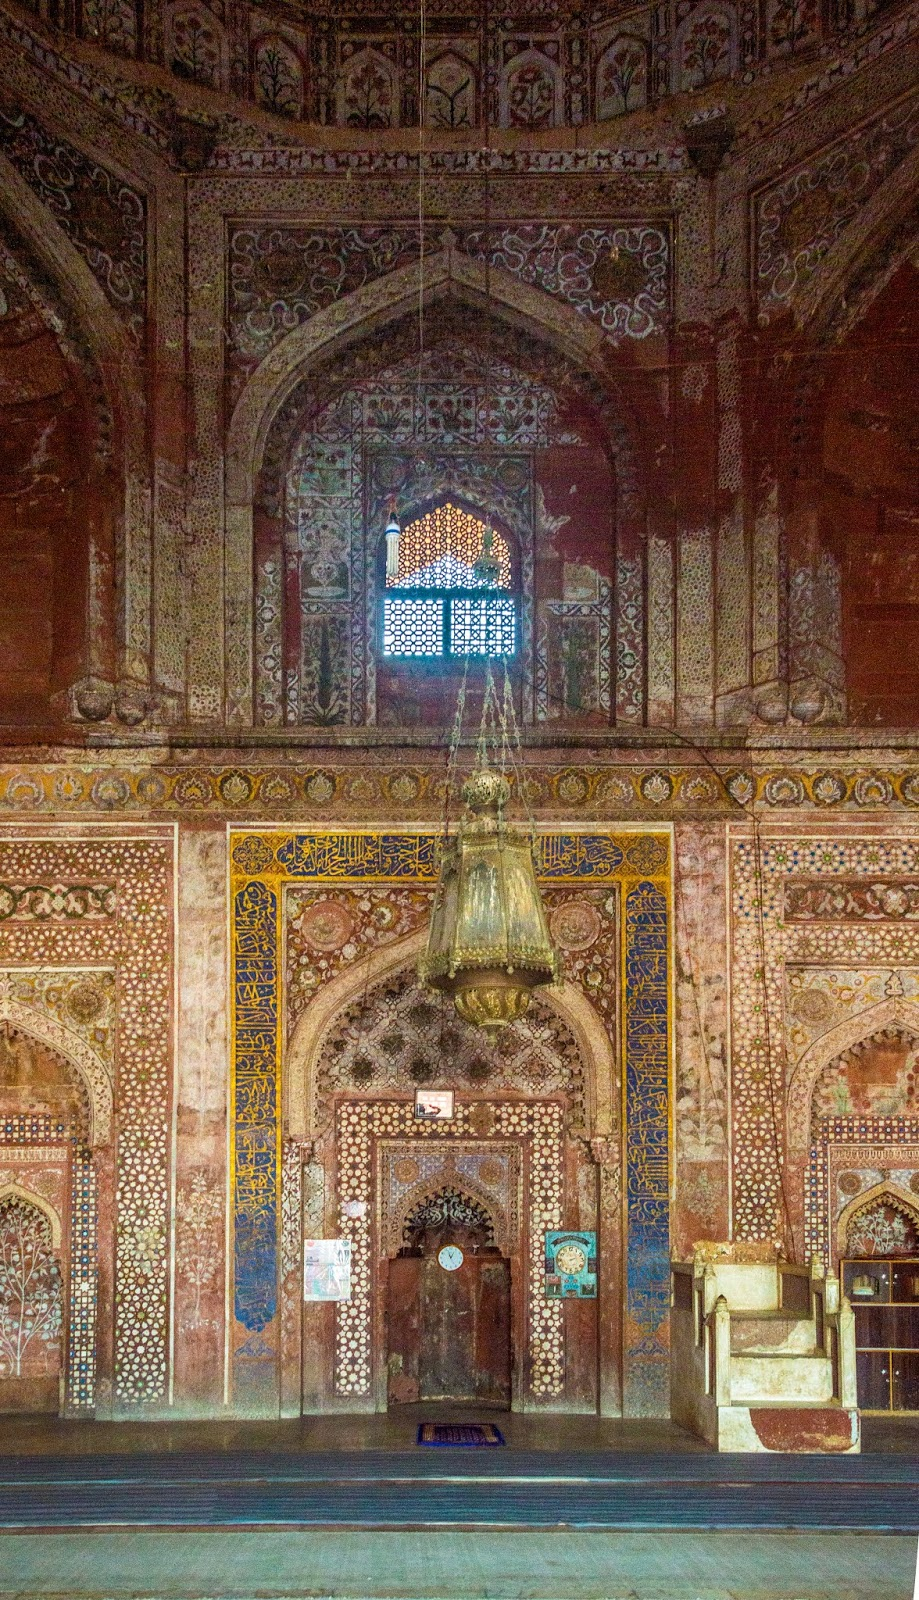 Ornately painted main Hall of Jama Masjid